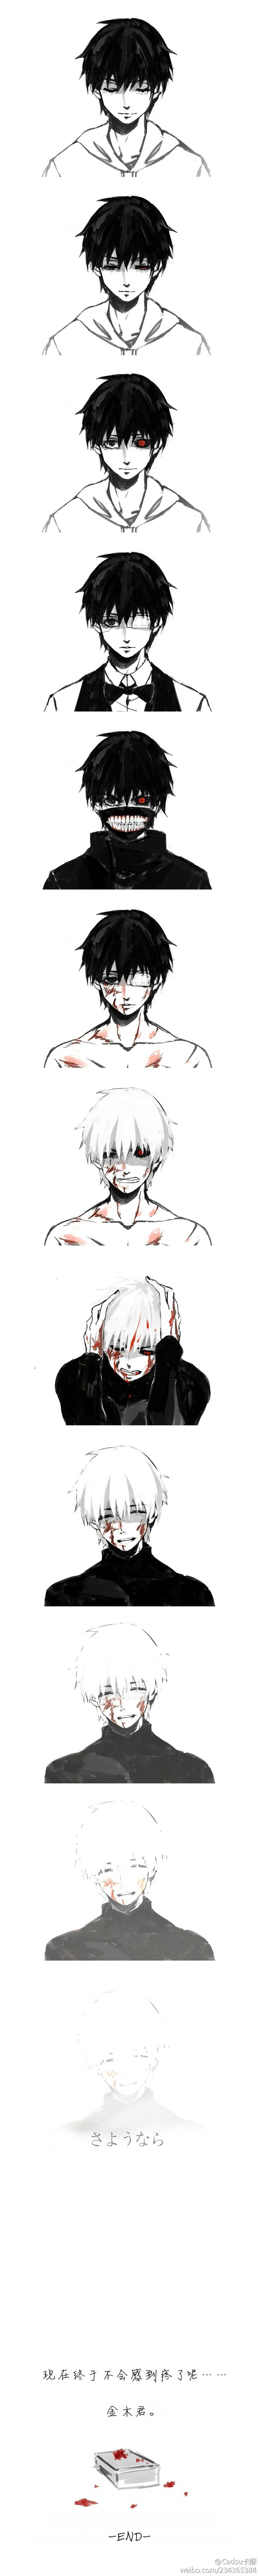 THE EVOLUTION OF KANEKI KUN